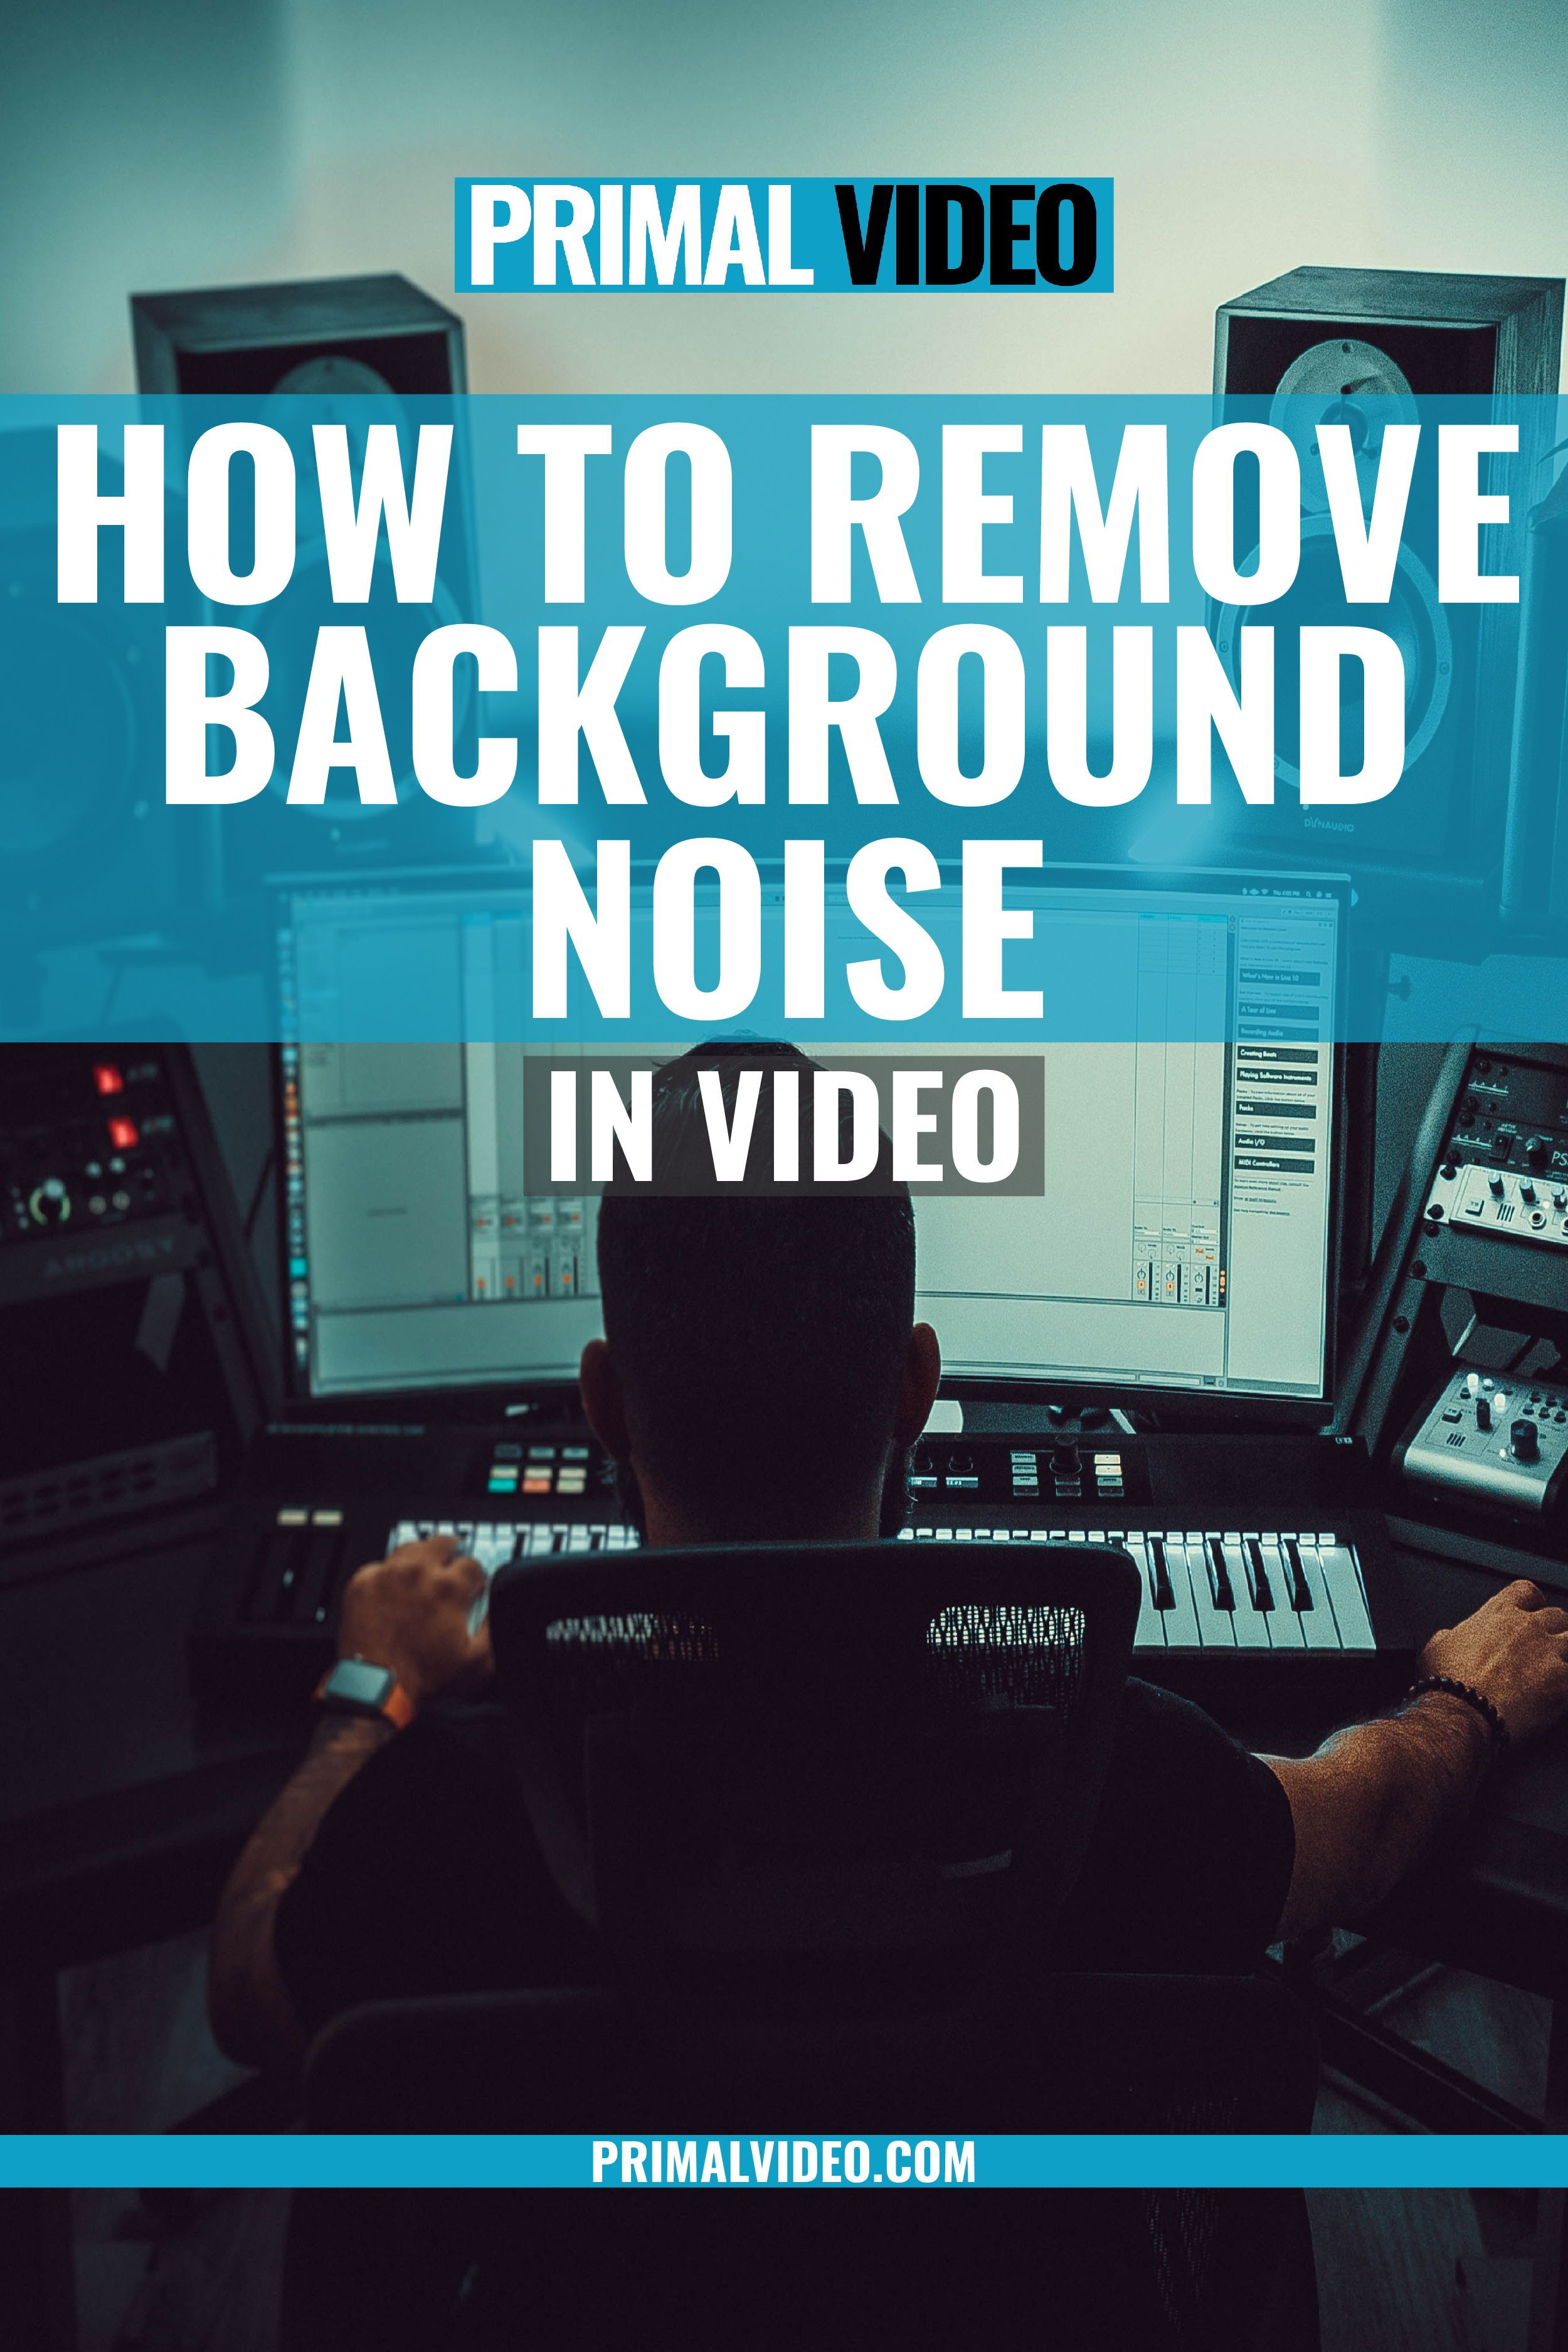 Learn how to remove background noise in this video